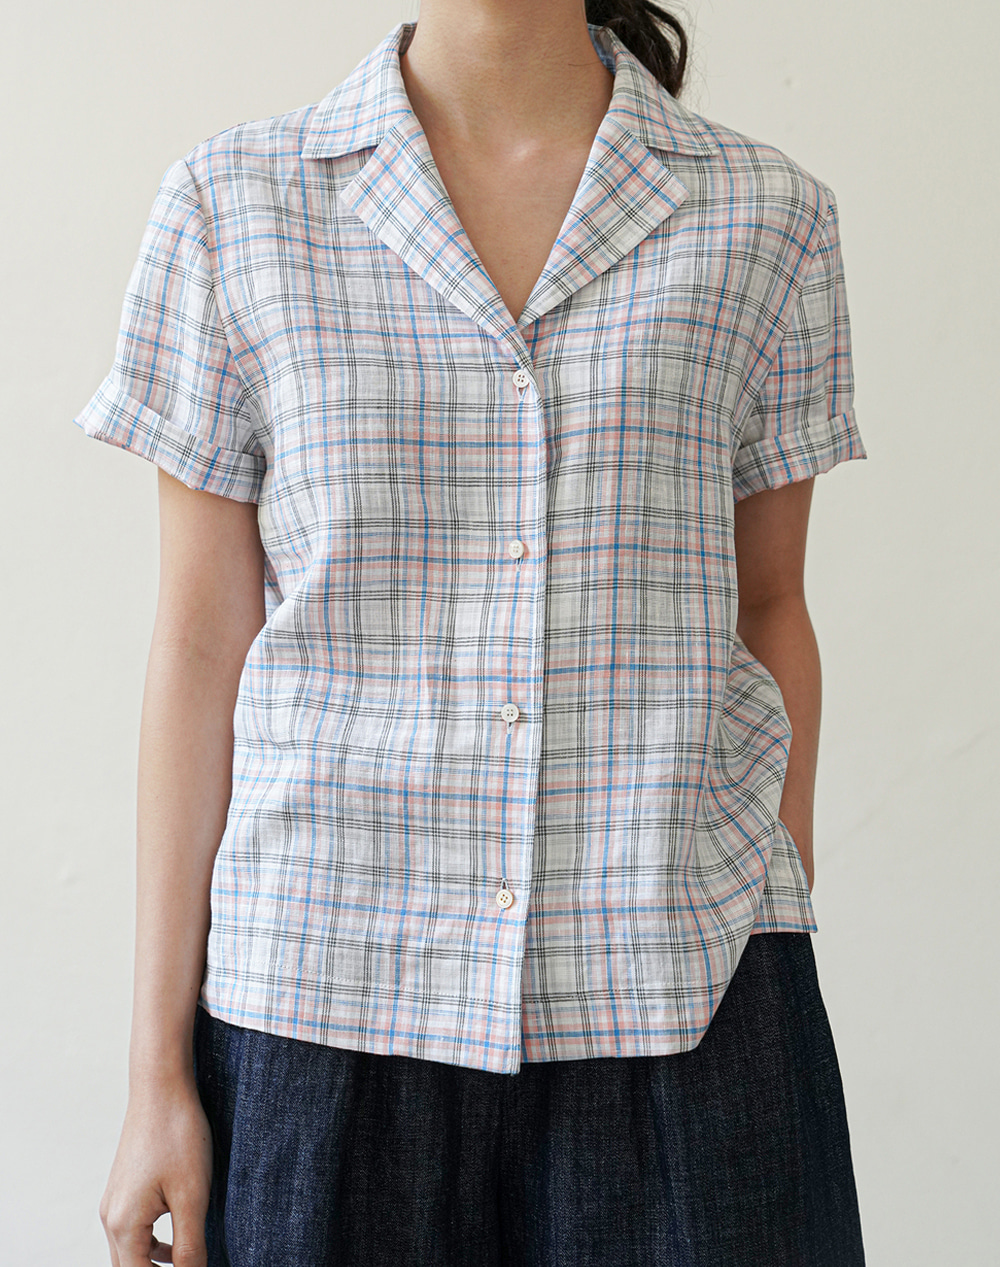 Dandelion Checked Shirts